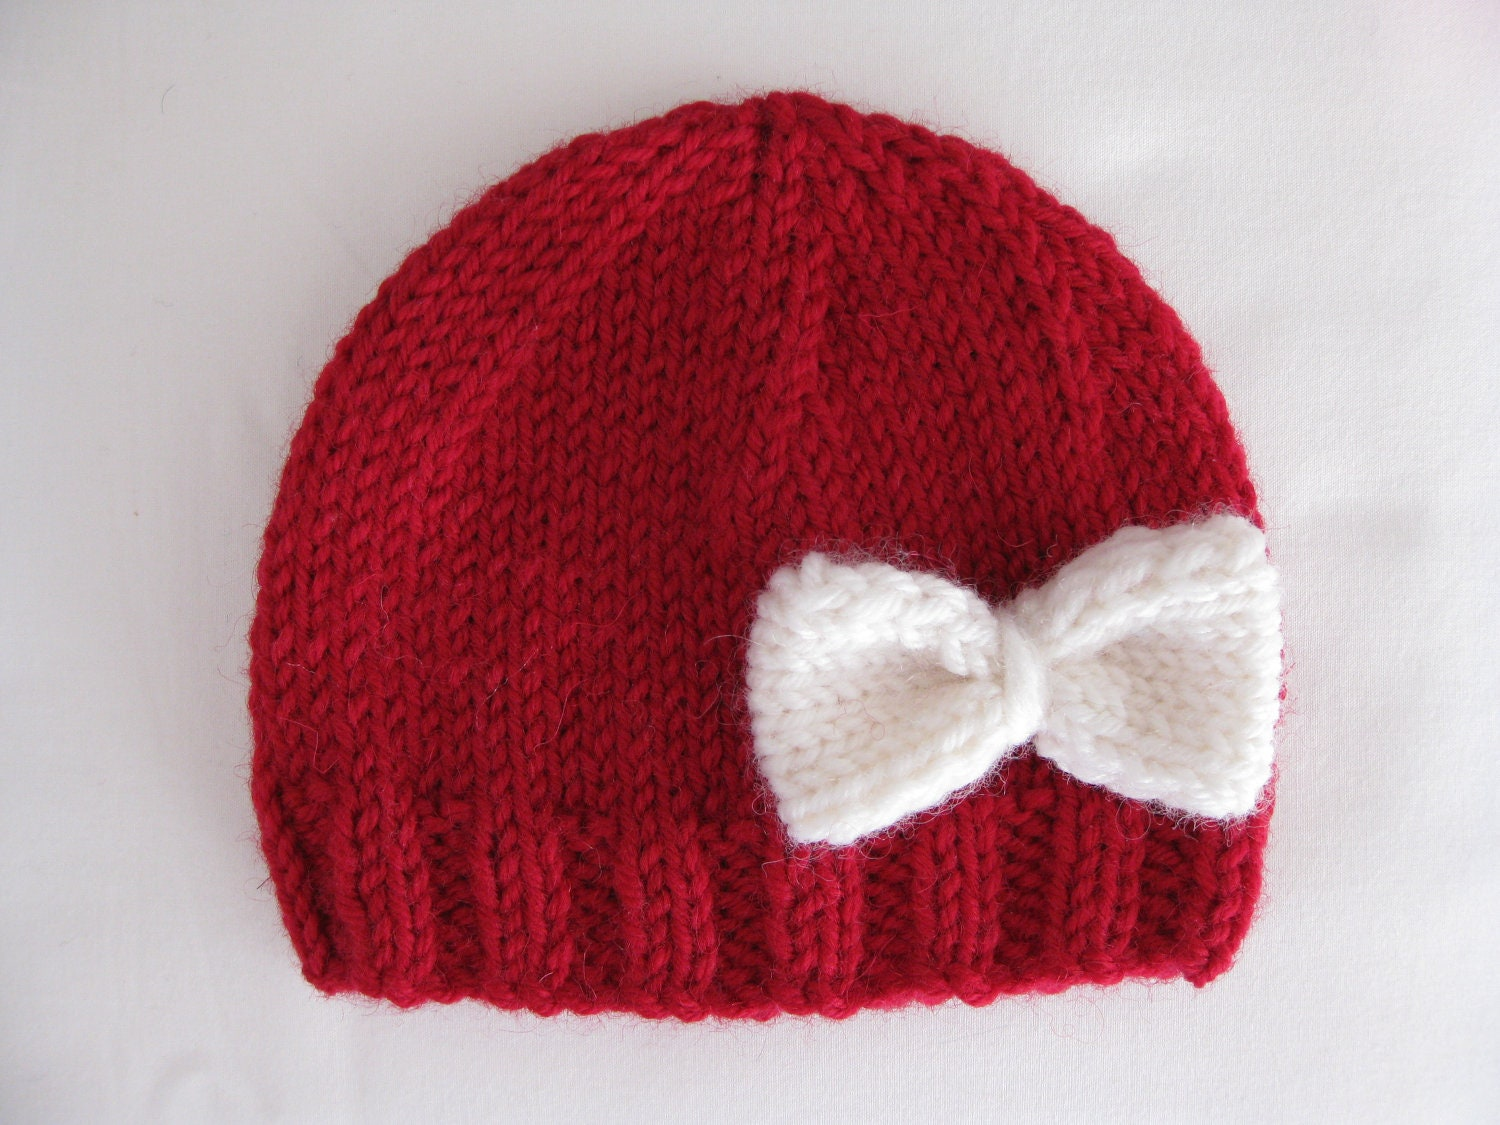 Pattern knit preemie newborn hat bow baby beanie 8ply DK double knit light  worsted girl red pdf embellish applique stockinette prem 16fcf36b2